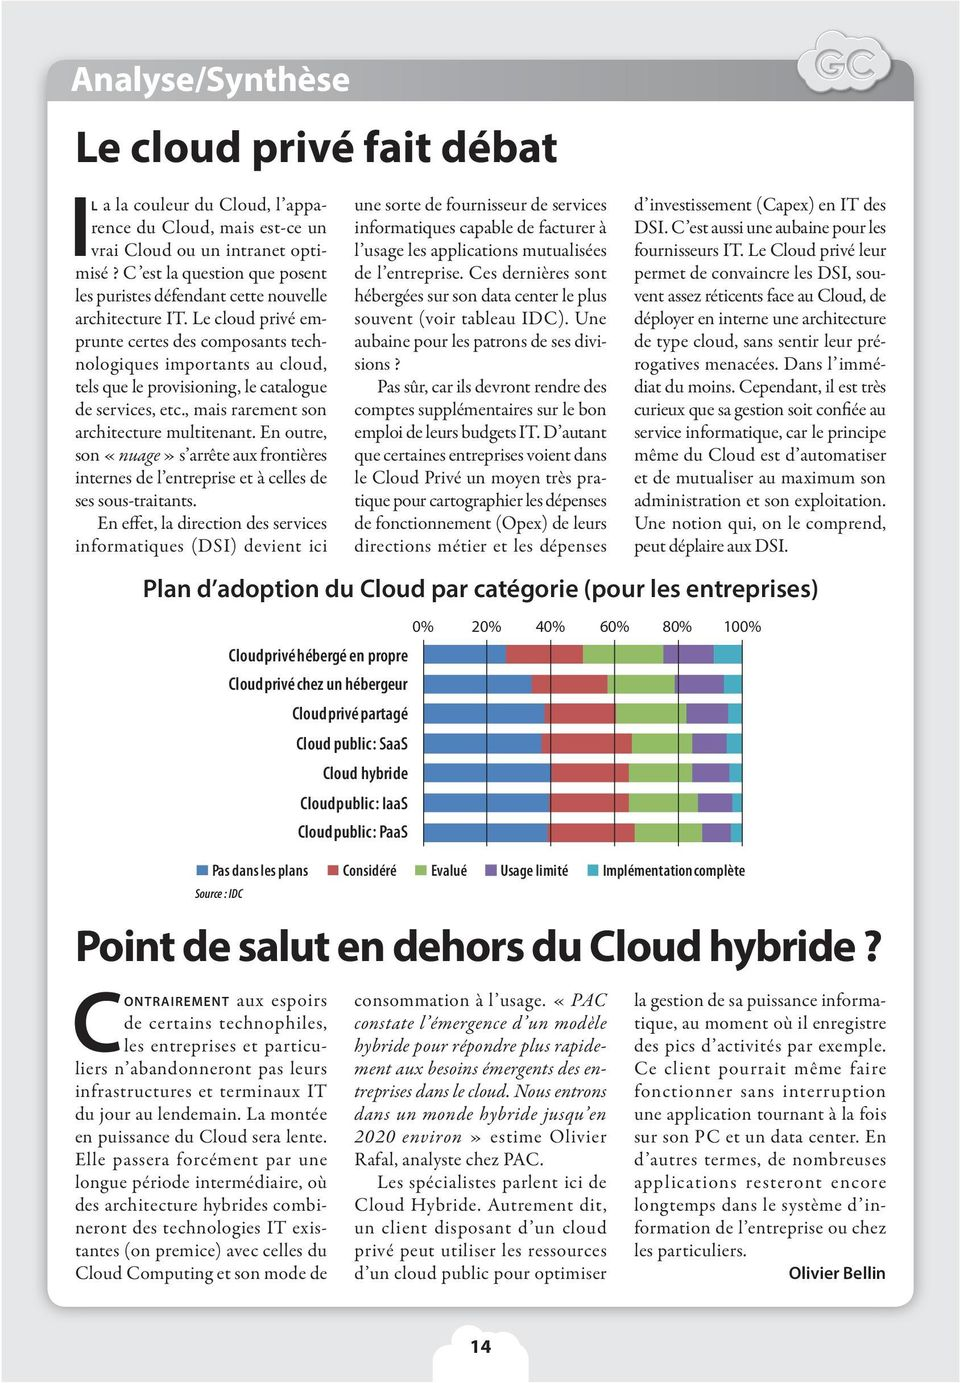 Le cloud privé emprunte certes des composants technologiques importants au cloud, tels que le provisioning, le catalogue de services, etc., mais rarement son architecture multitenant.